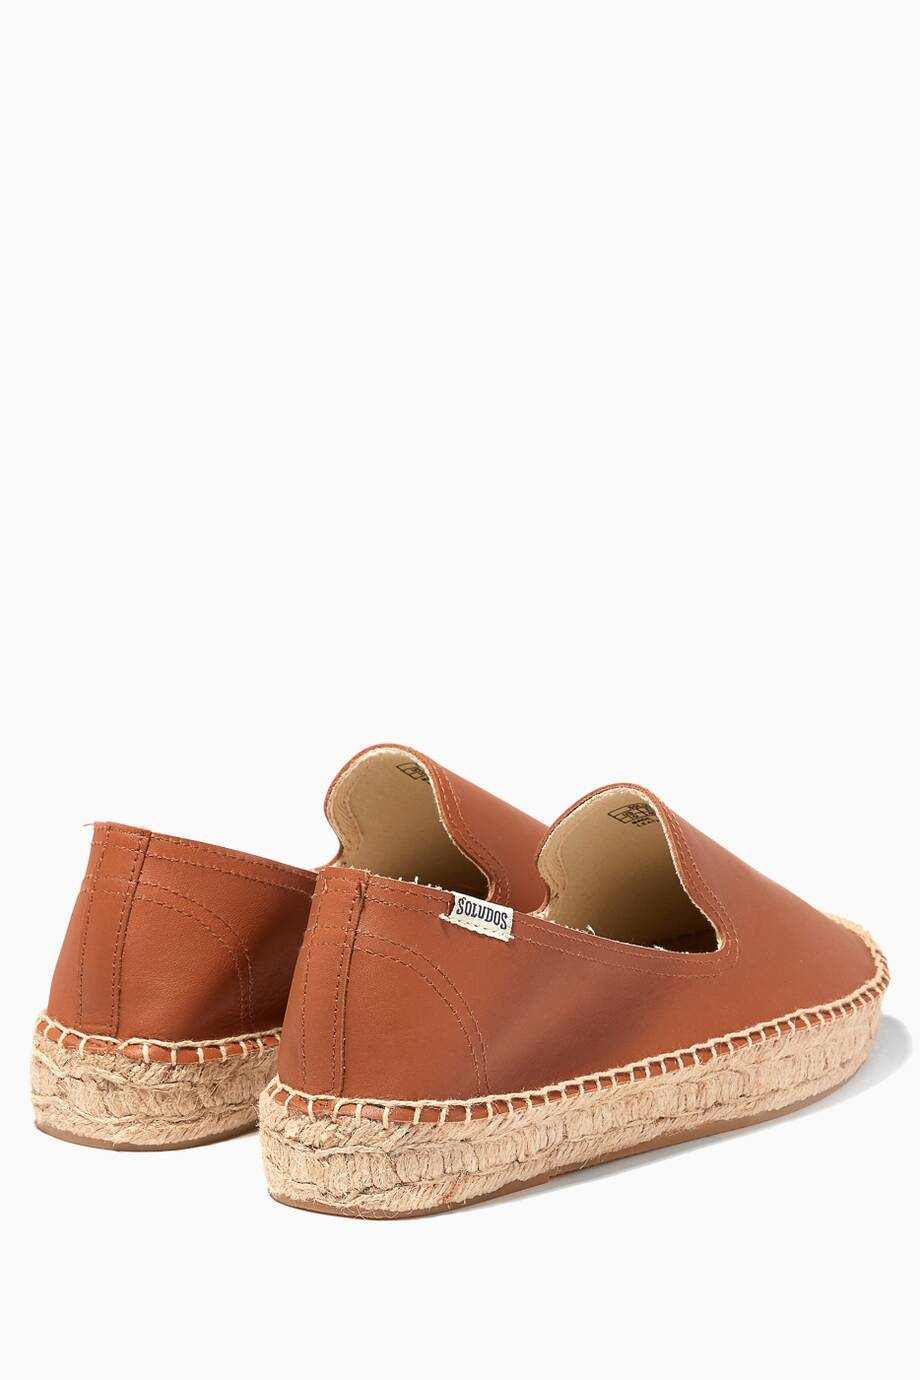 Find mens smoking slipper at ShopStyle. Shop the latest collection of mens smoking slipper from the most popular stores - all in one place.